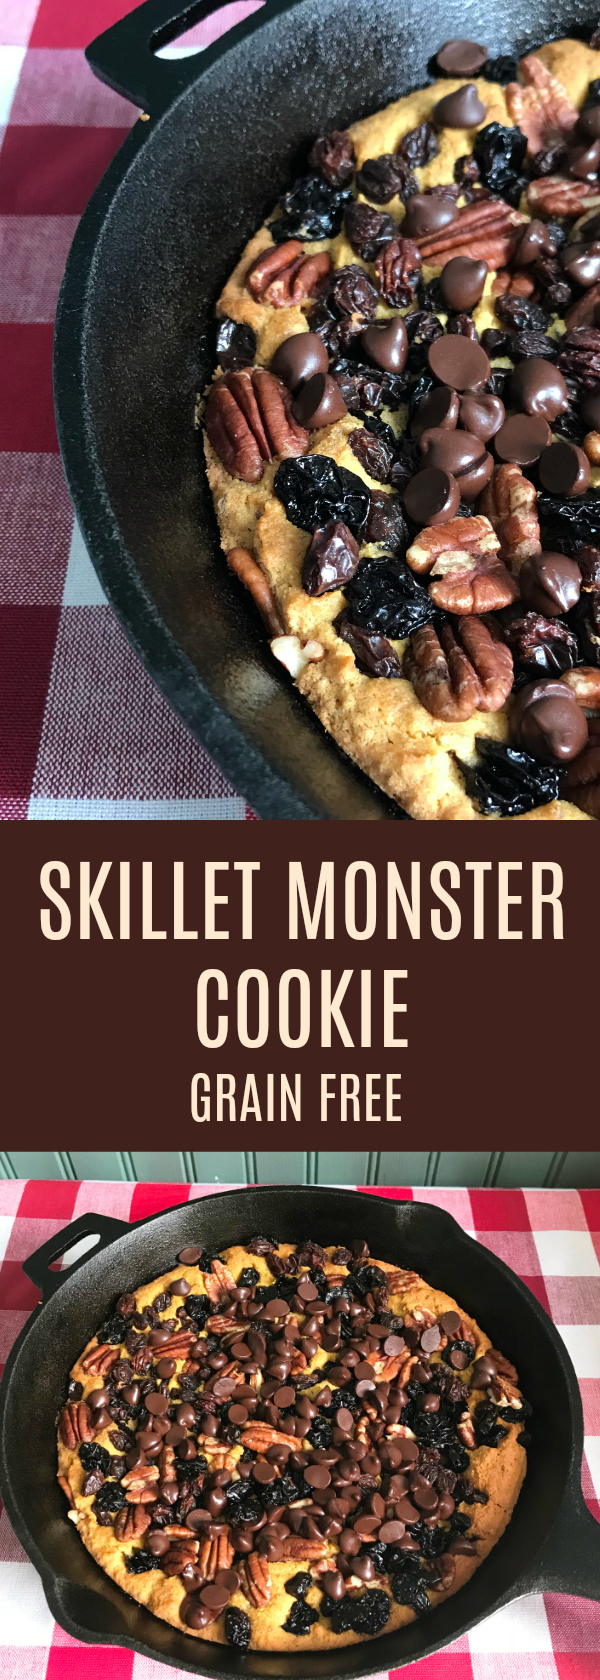 Crowd Pleasing Giant Cookie in a Skillet! Grain Free, Paleo with a Dairy Free Option!